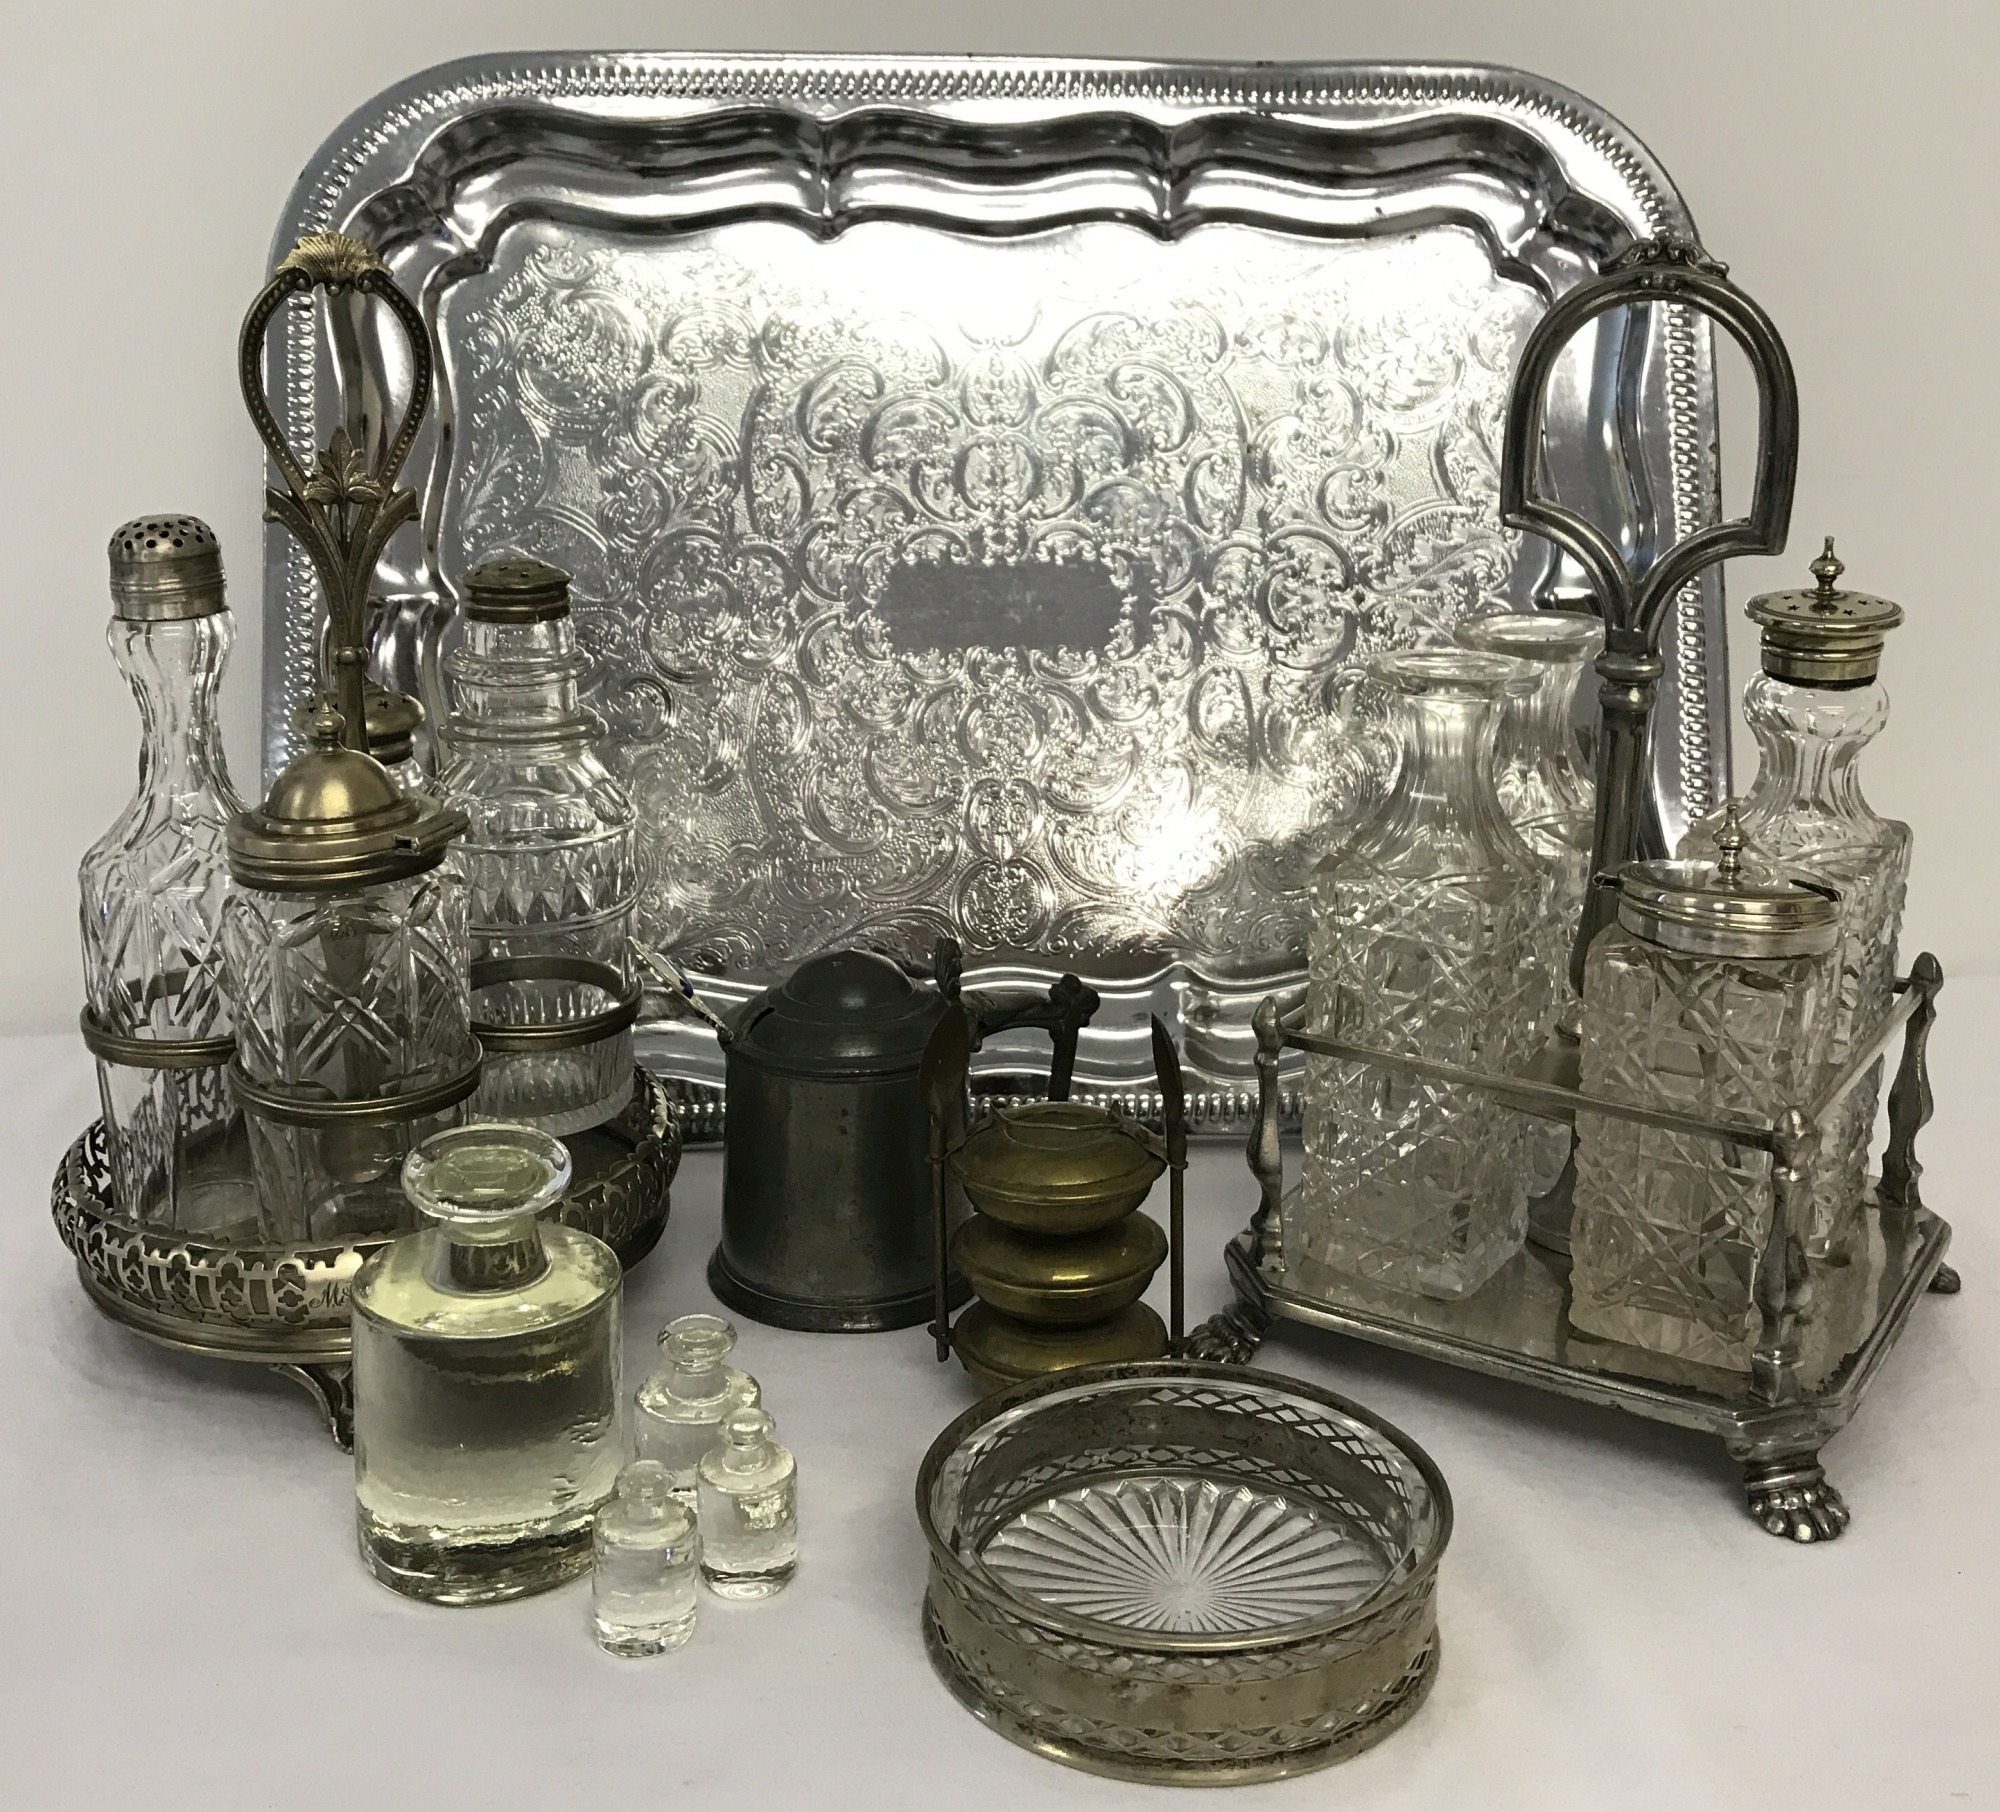 Lot 70 - 2 silver plated and cut glass cruet sets in stands.